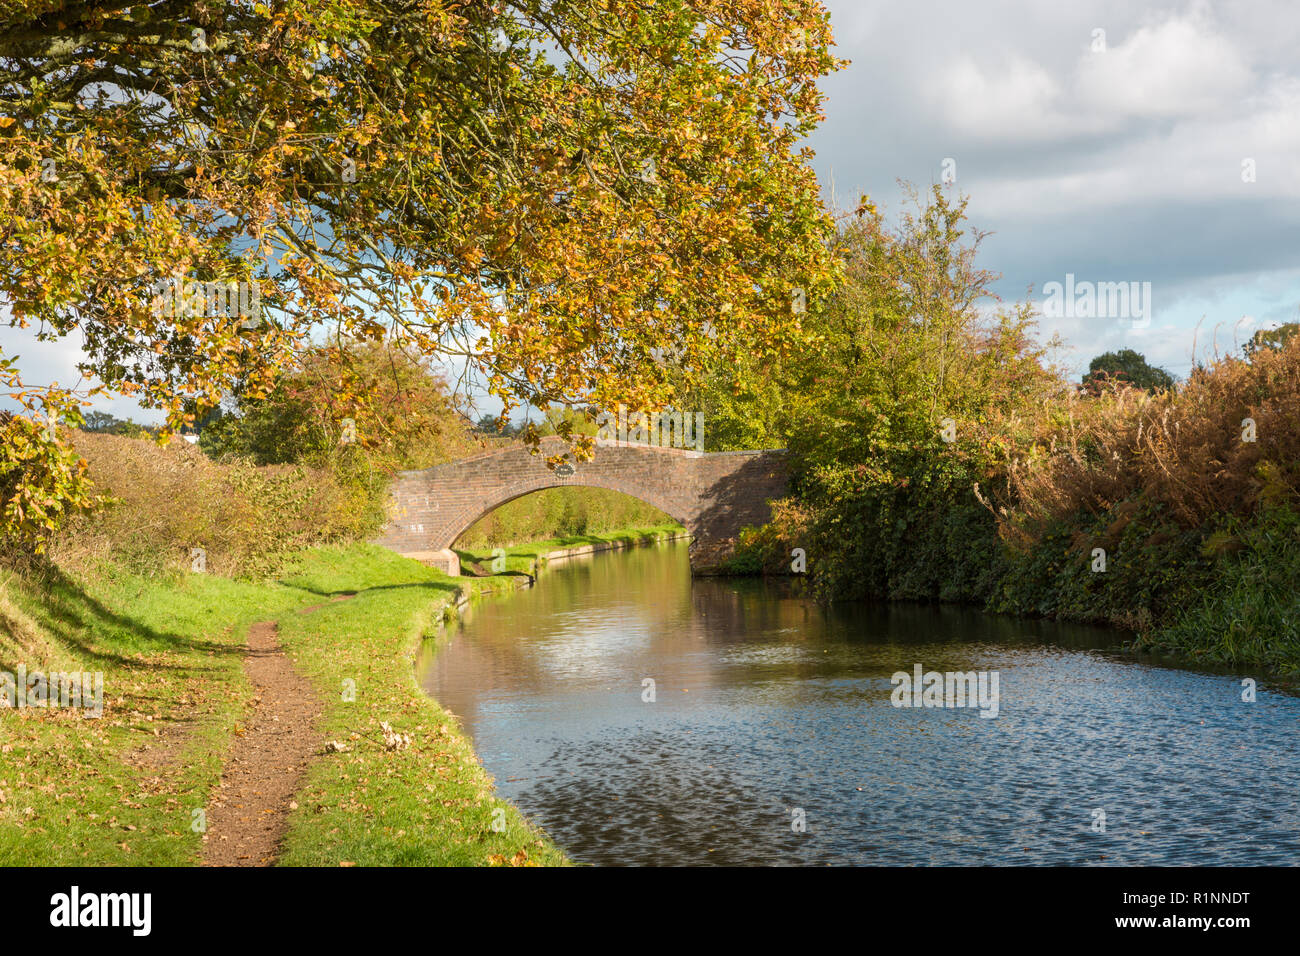 Canal towpath, autumn, late summer, Staffordshire and Worcestershire canal, UK, near wolverhampton - Stock Image